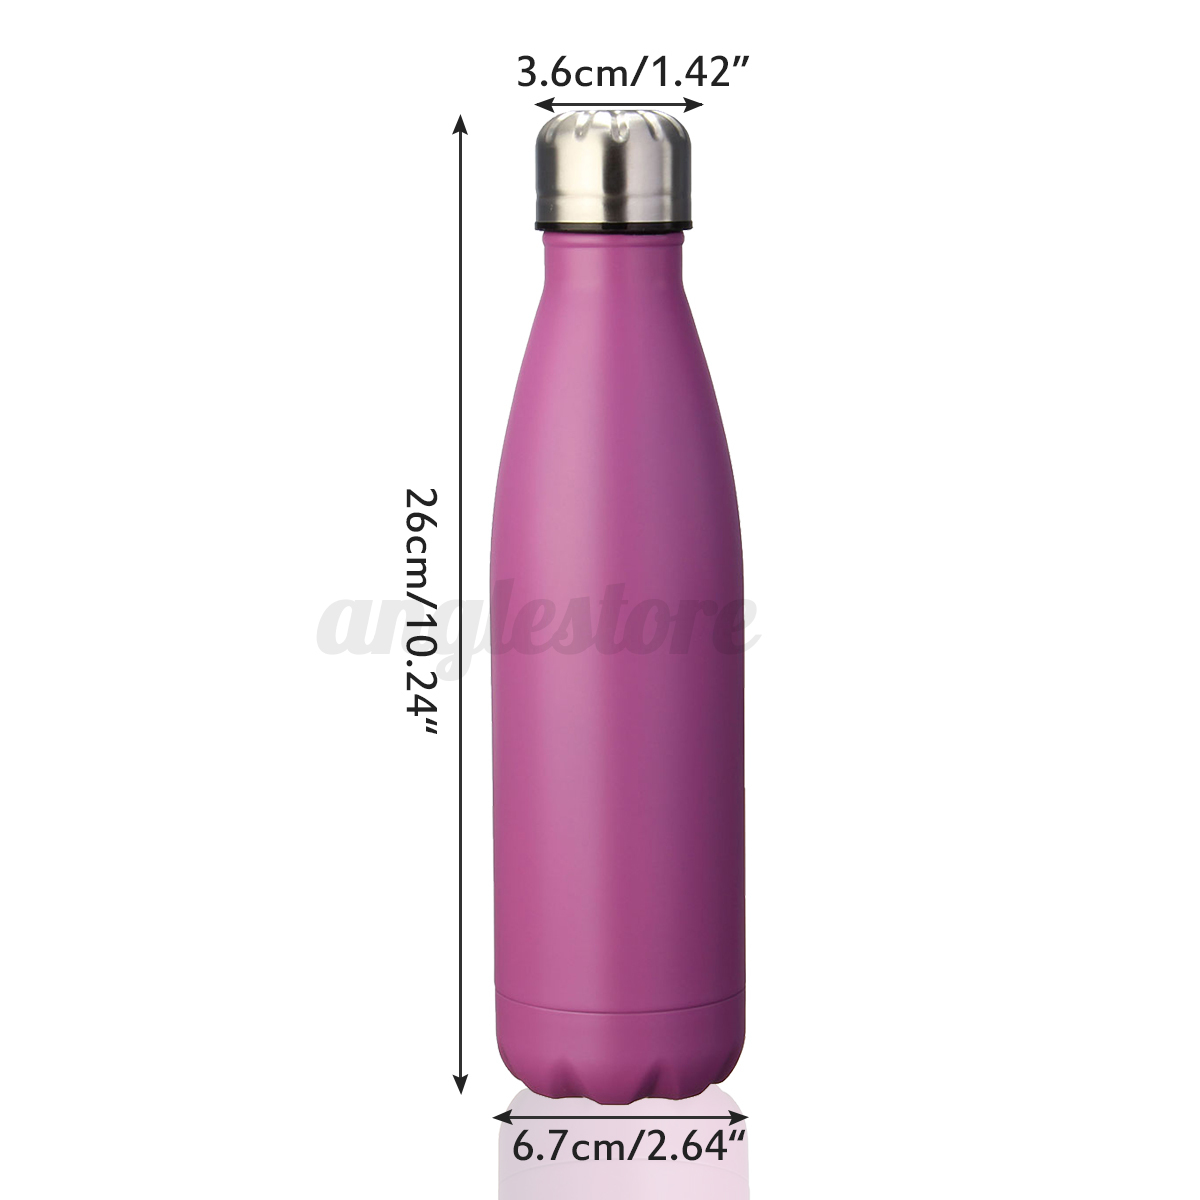 500ML-Stainless-Steel-Double-Wall-Vacuum-Insulated-Bottle-Water-Flask-Sport miniature 11